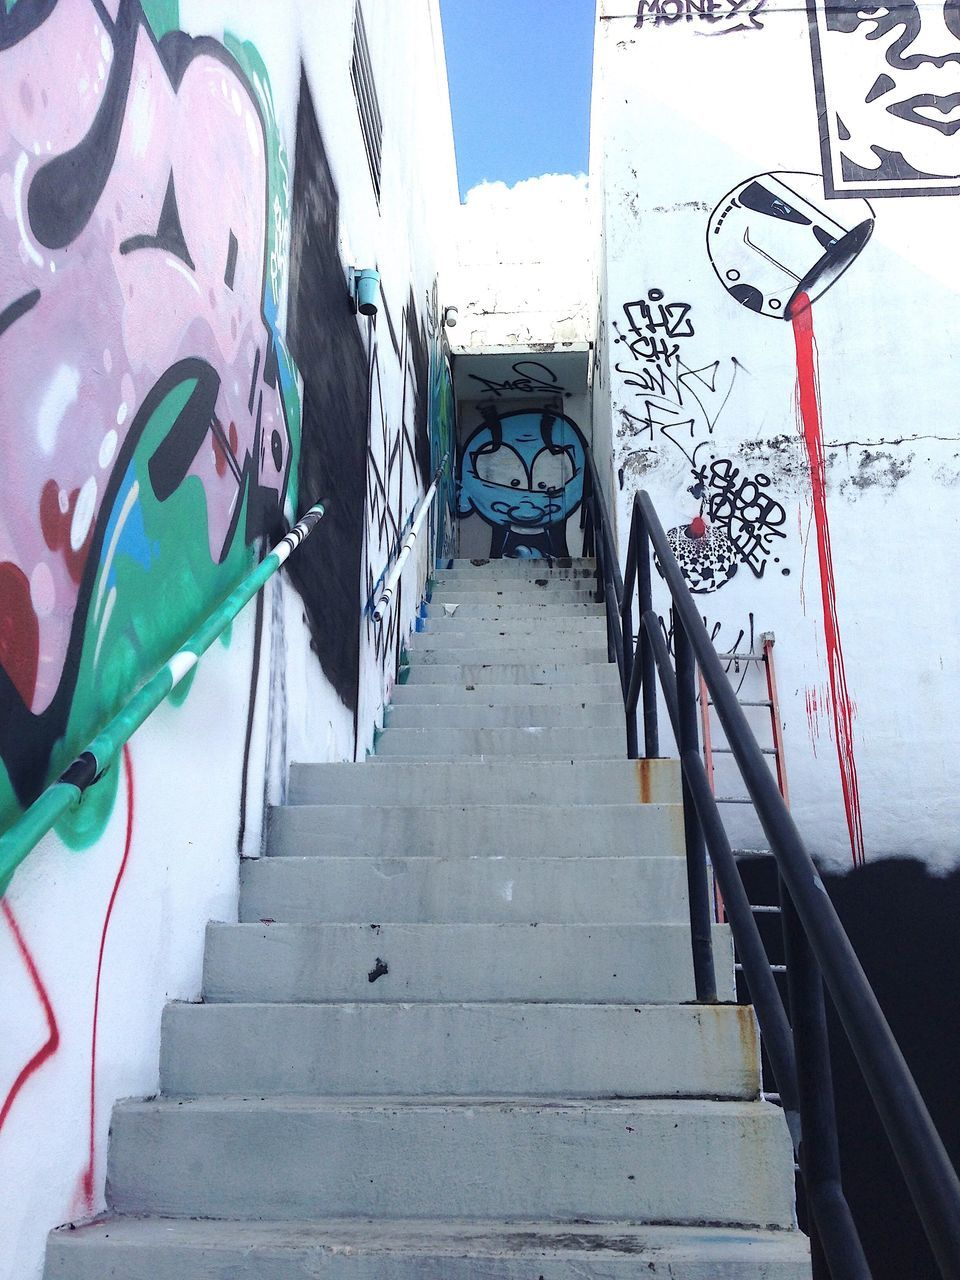 steps, graffiti, railing, steps and staircases, staircase, day, built structure, no people, architecture, outdoors